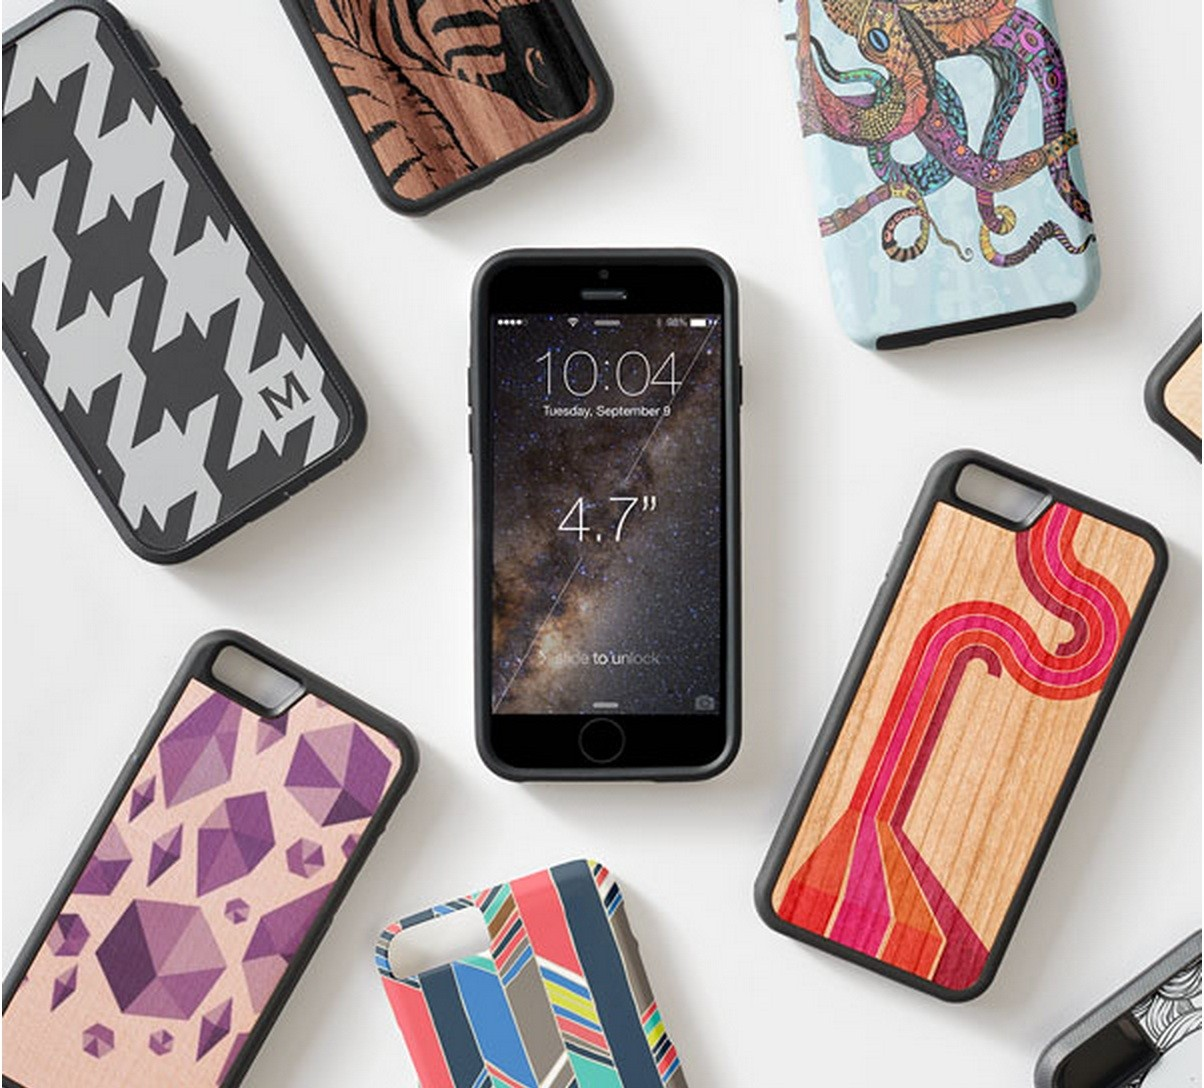 Coolest iPhone 6 cases